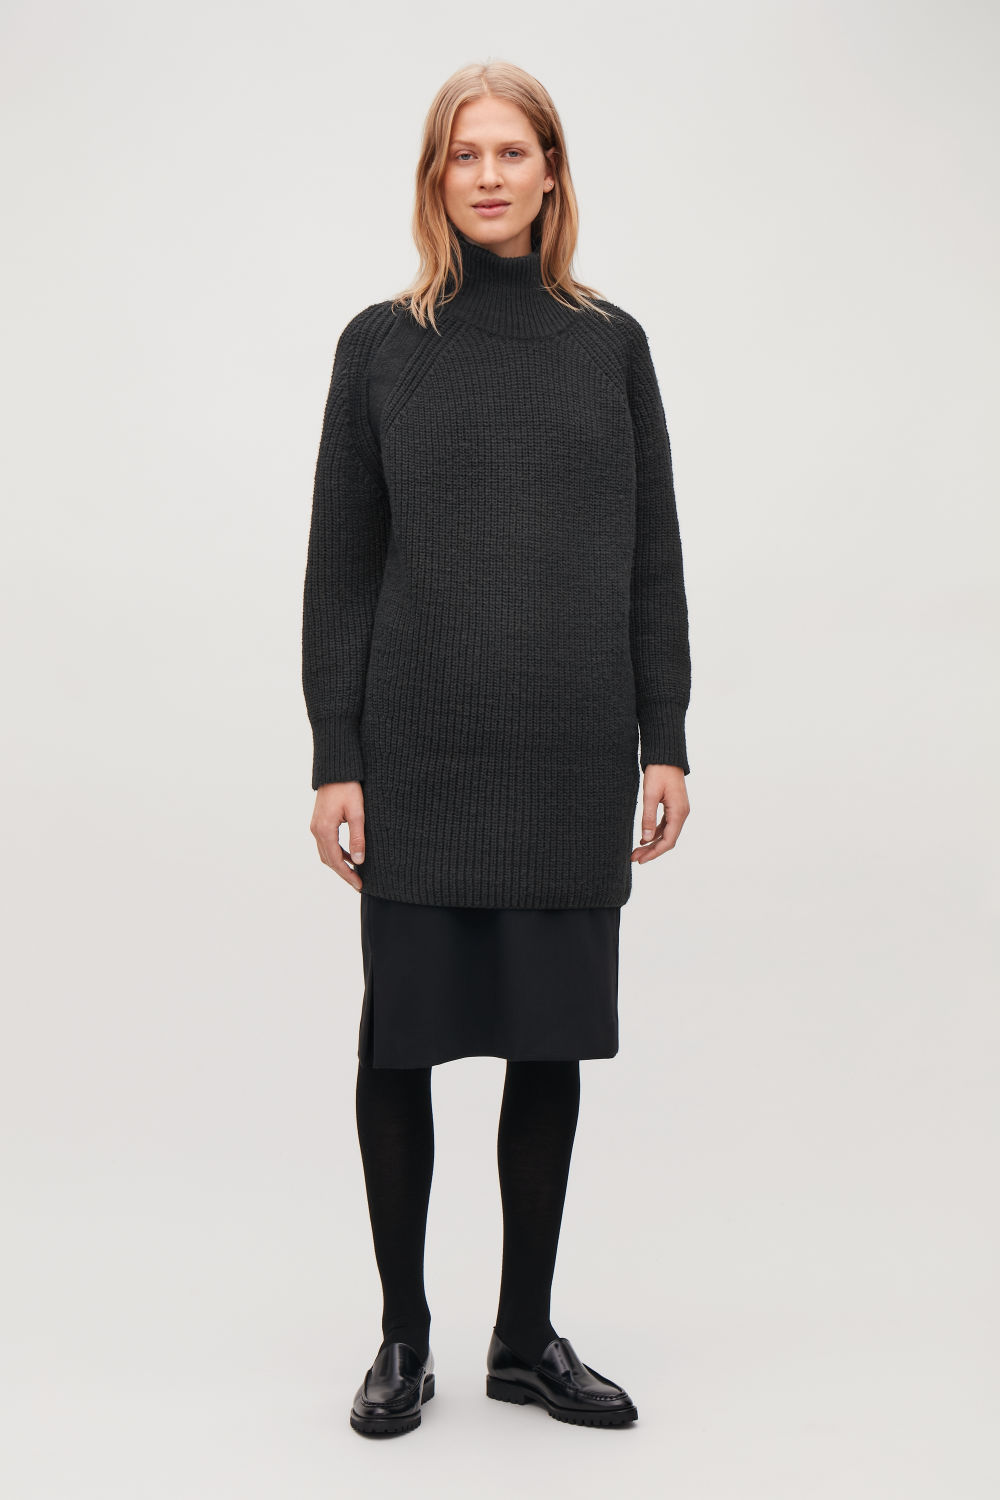 OVERSIZED WOOL-KNIT DRESS